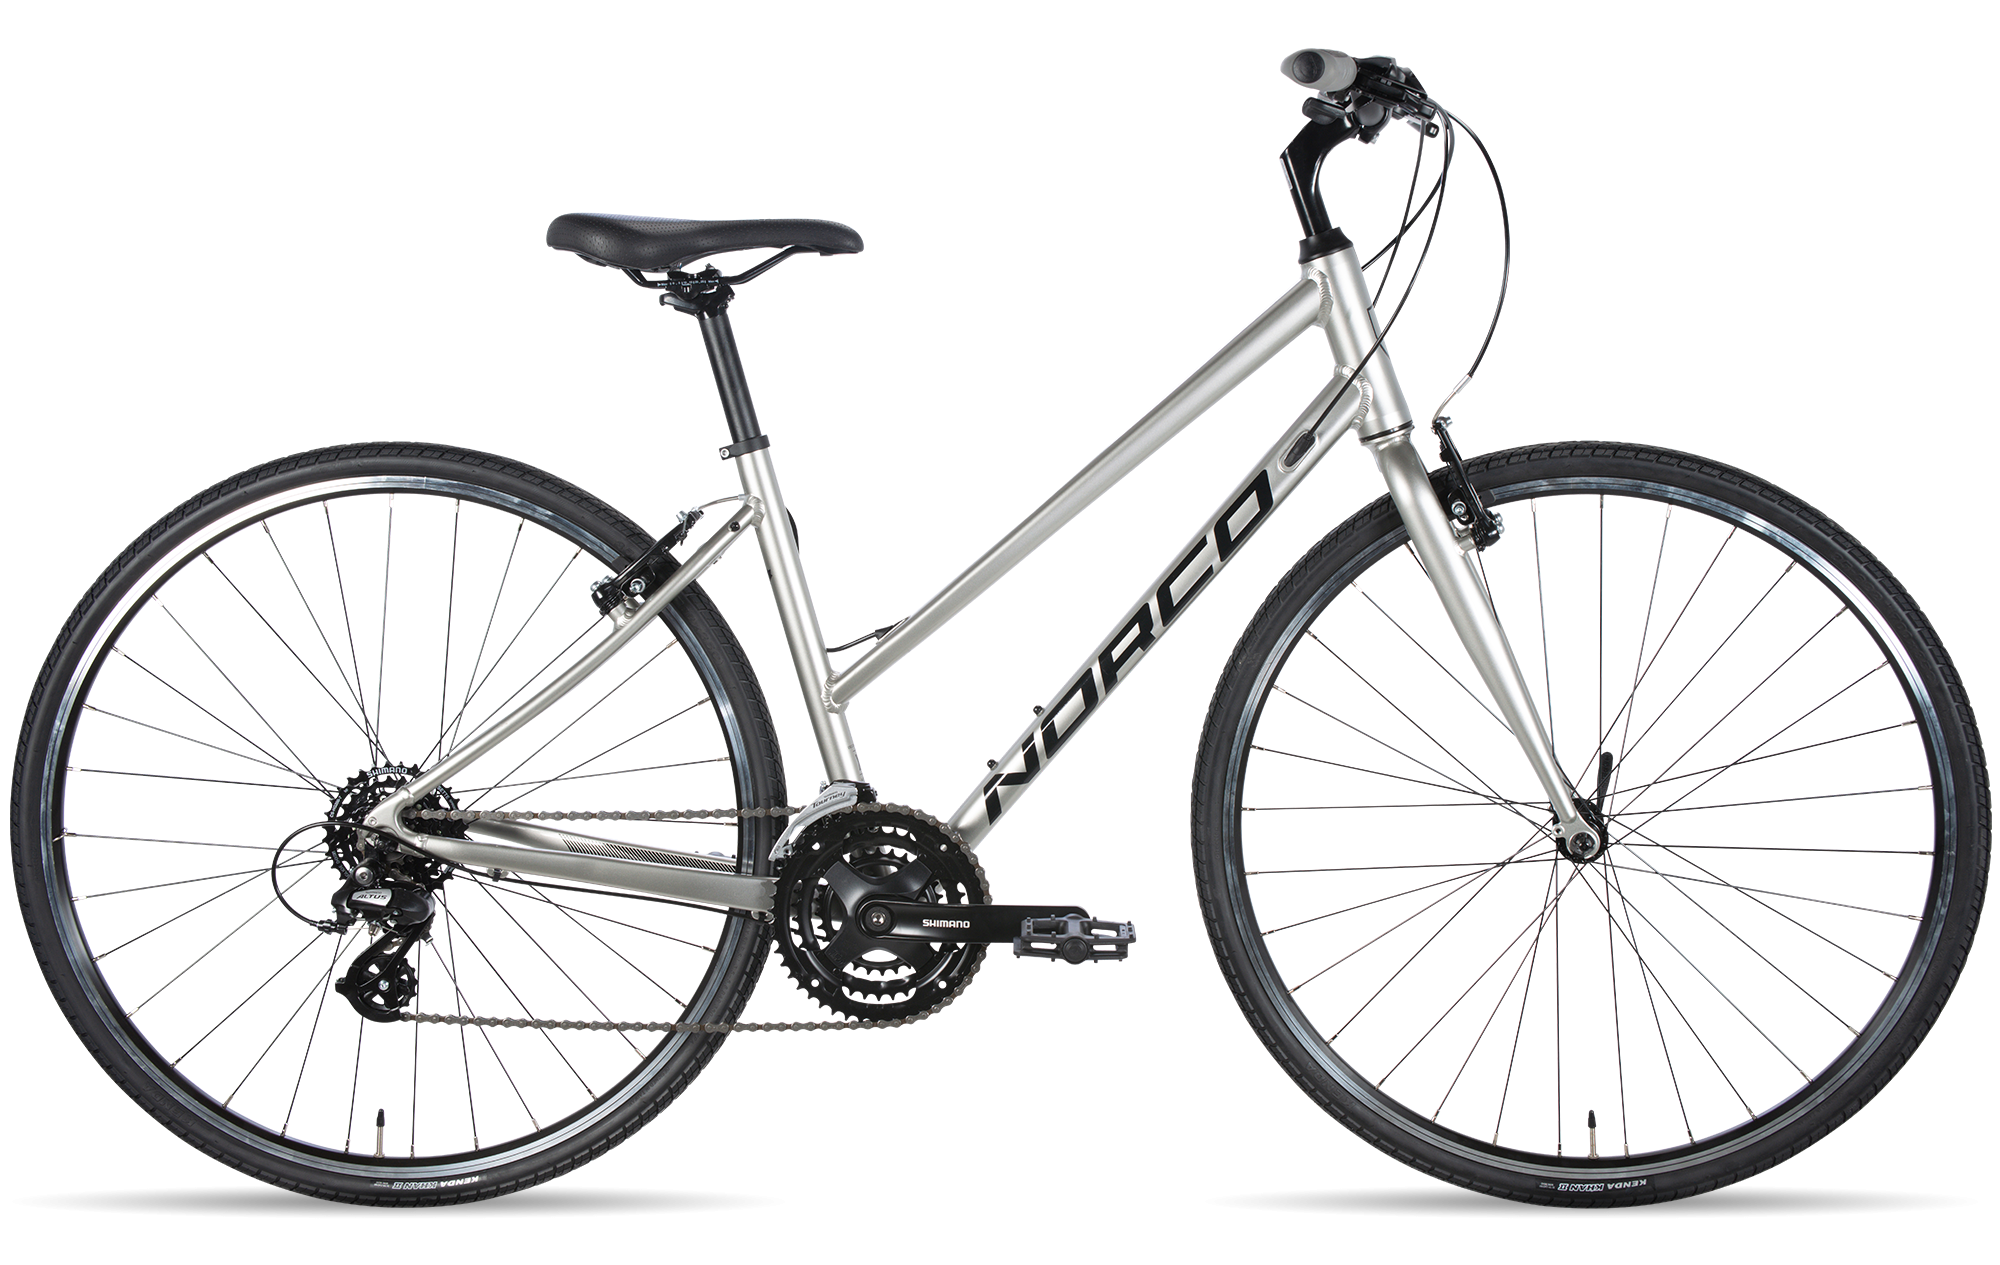 NORCO VFR 2 STEP-THRU XS SILVER